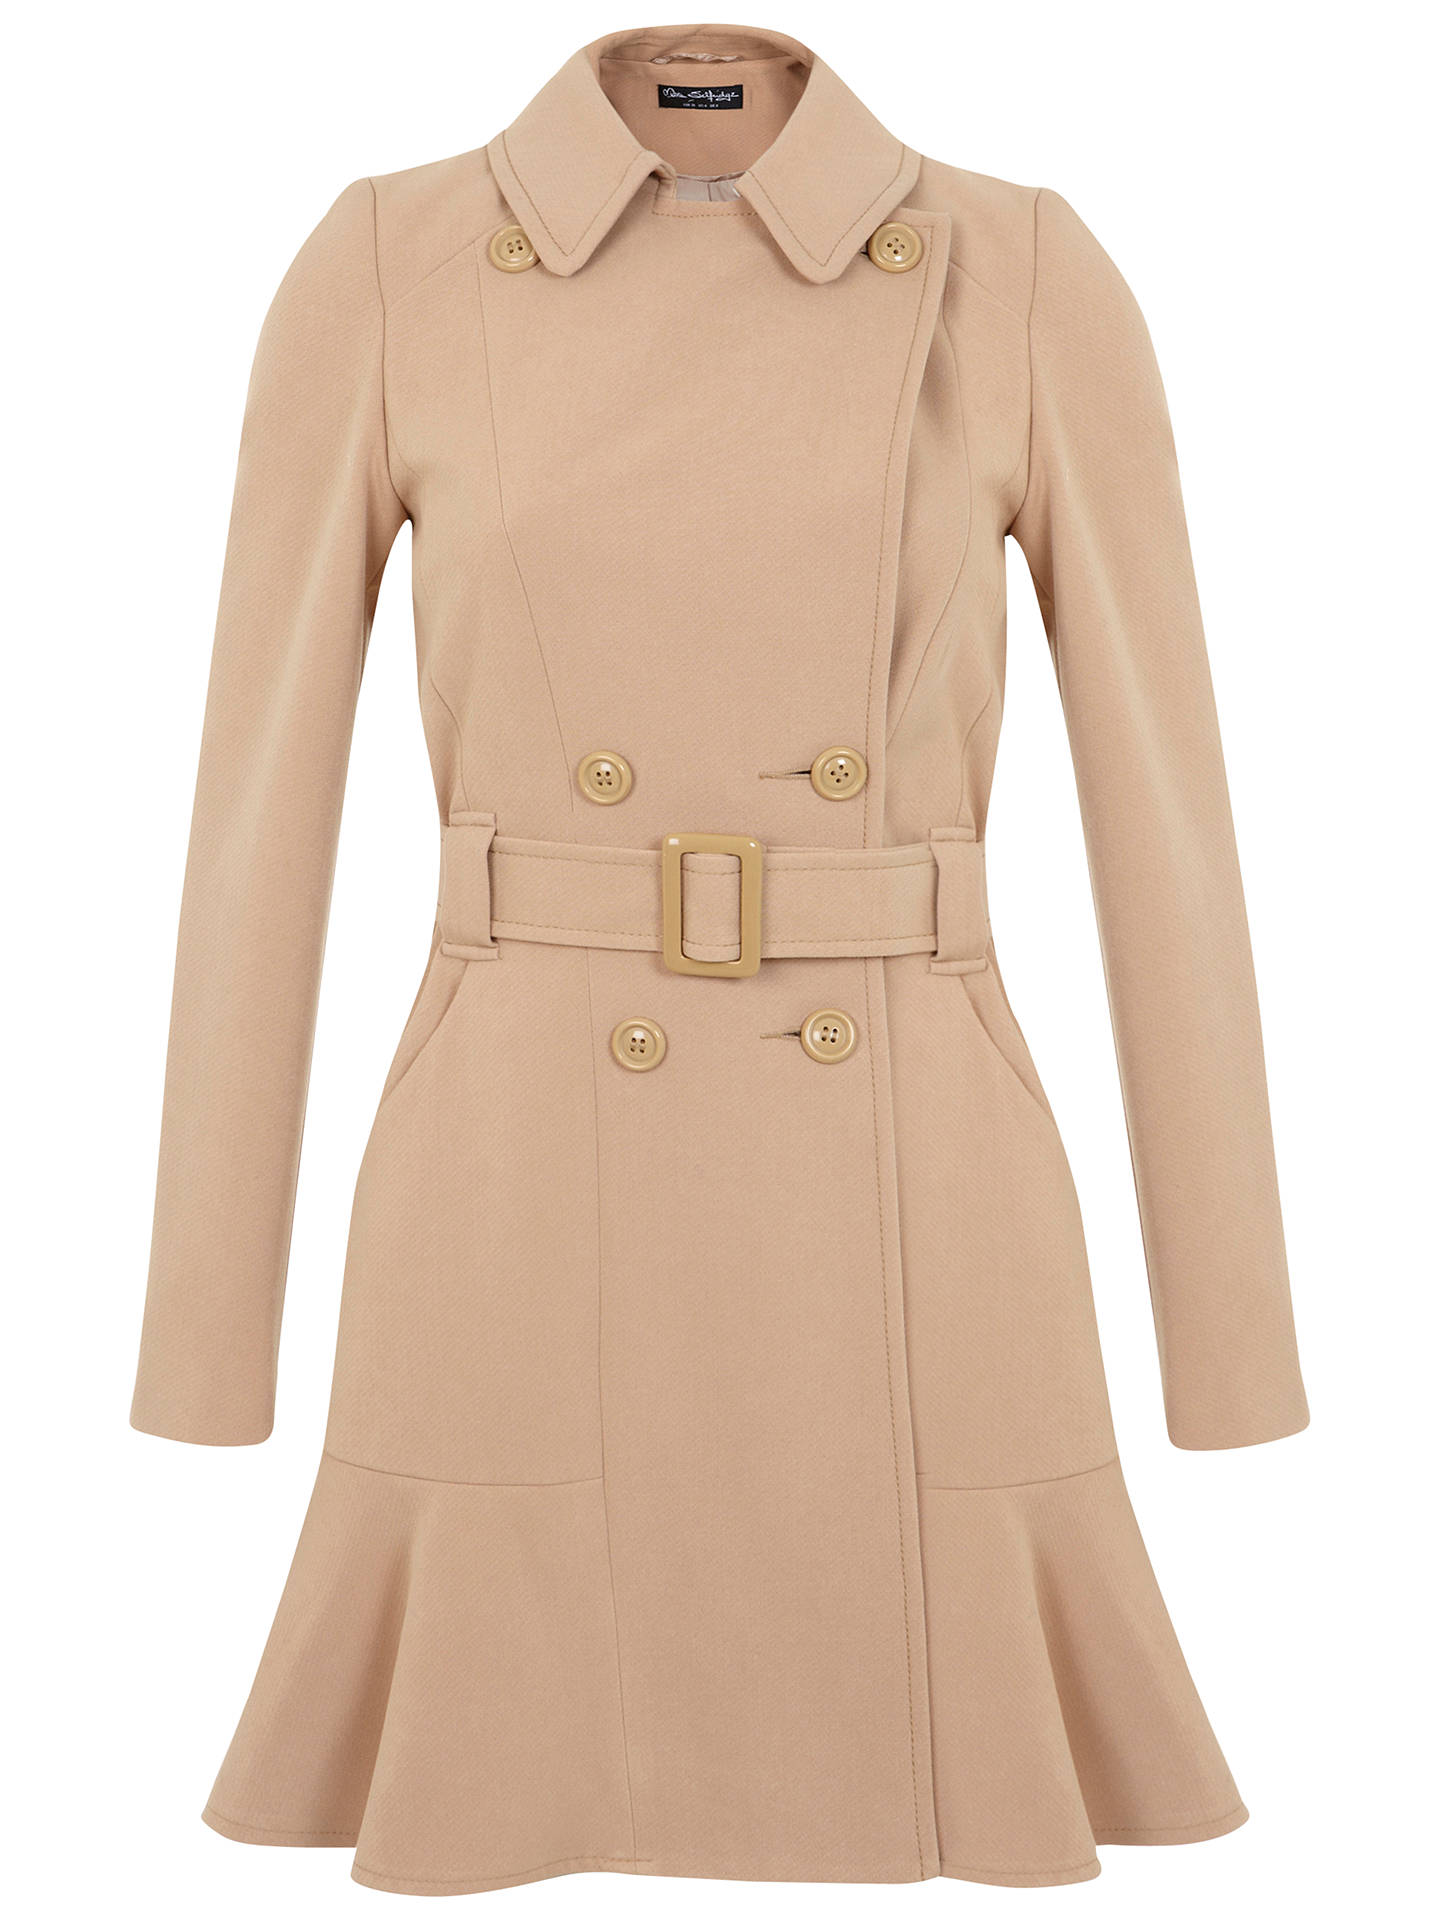 Buy Miss Selfridge Peplum Hem Coat, Camel, 6 Online at johnlewis.com